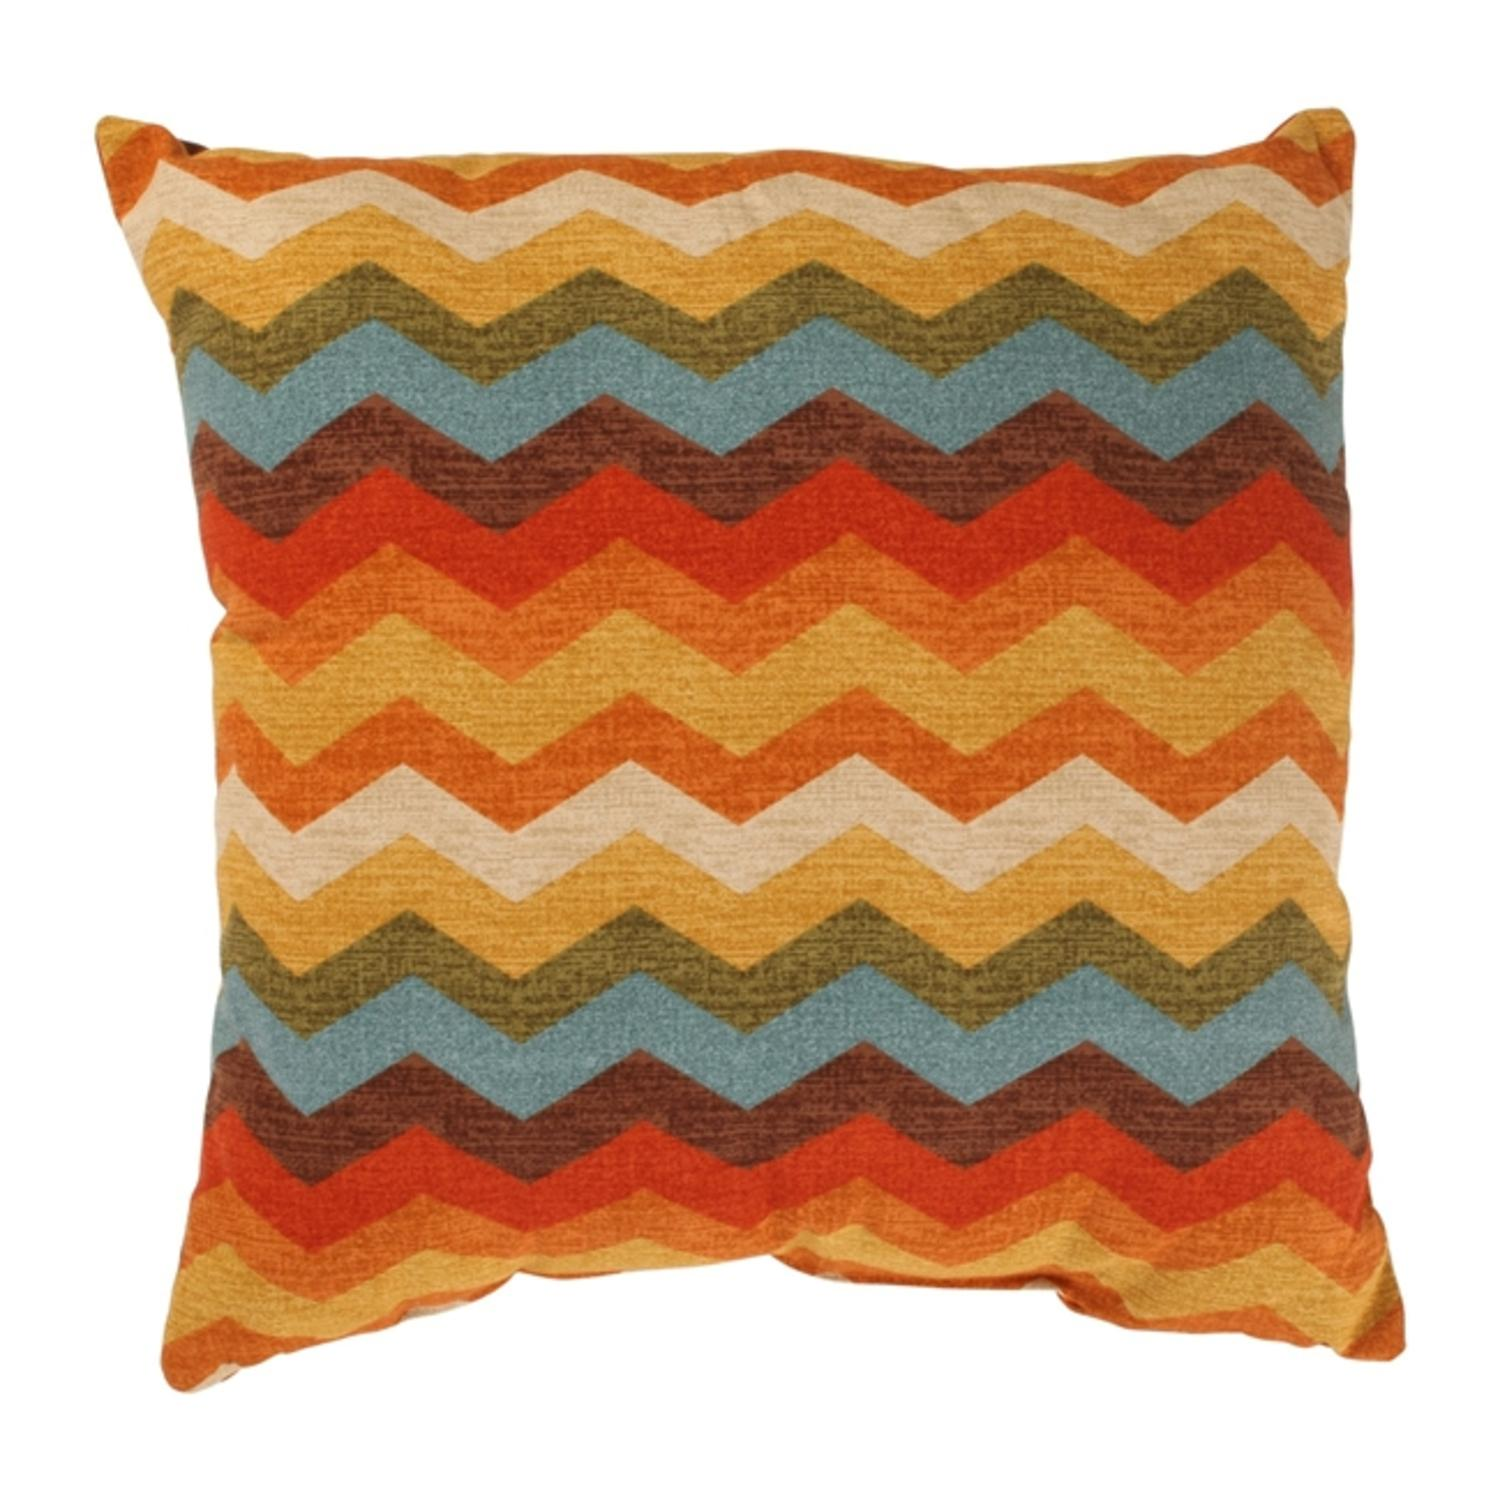 "Panama Wave Rainbow Chevron Zig Zag Striped Cotton Throw Pillow 18"" x 18"""